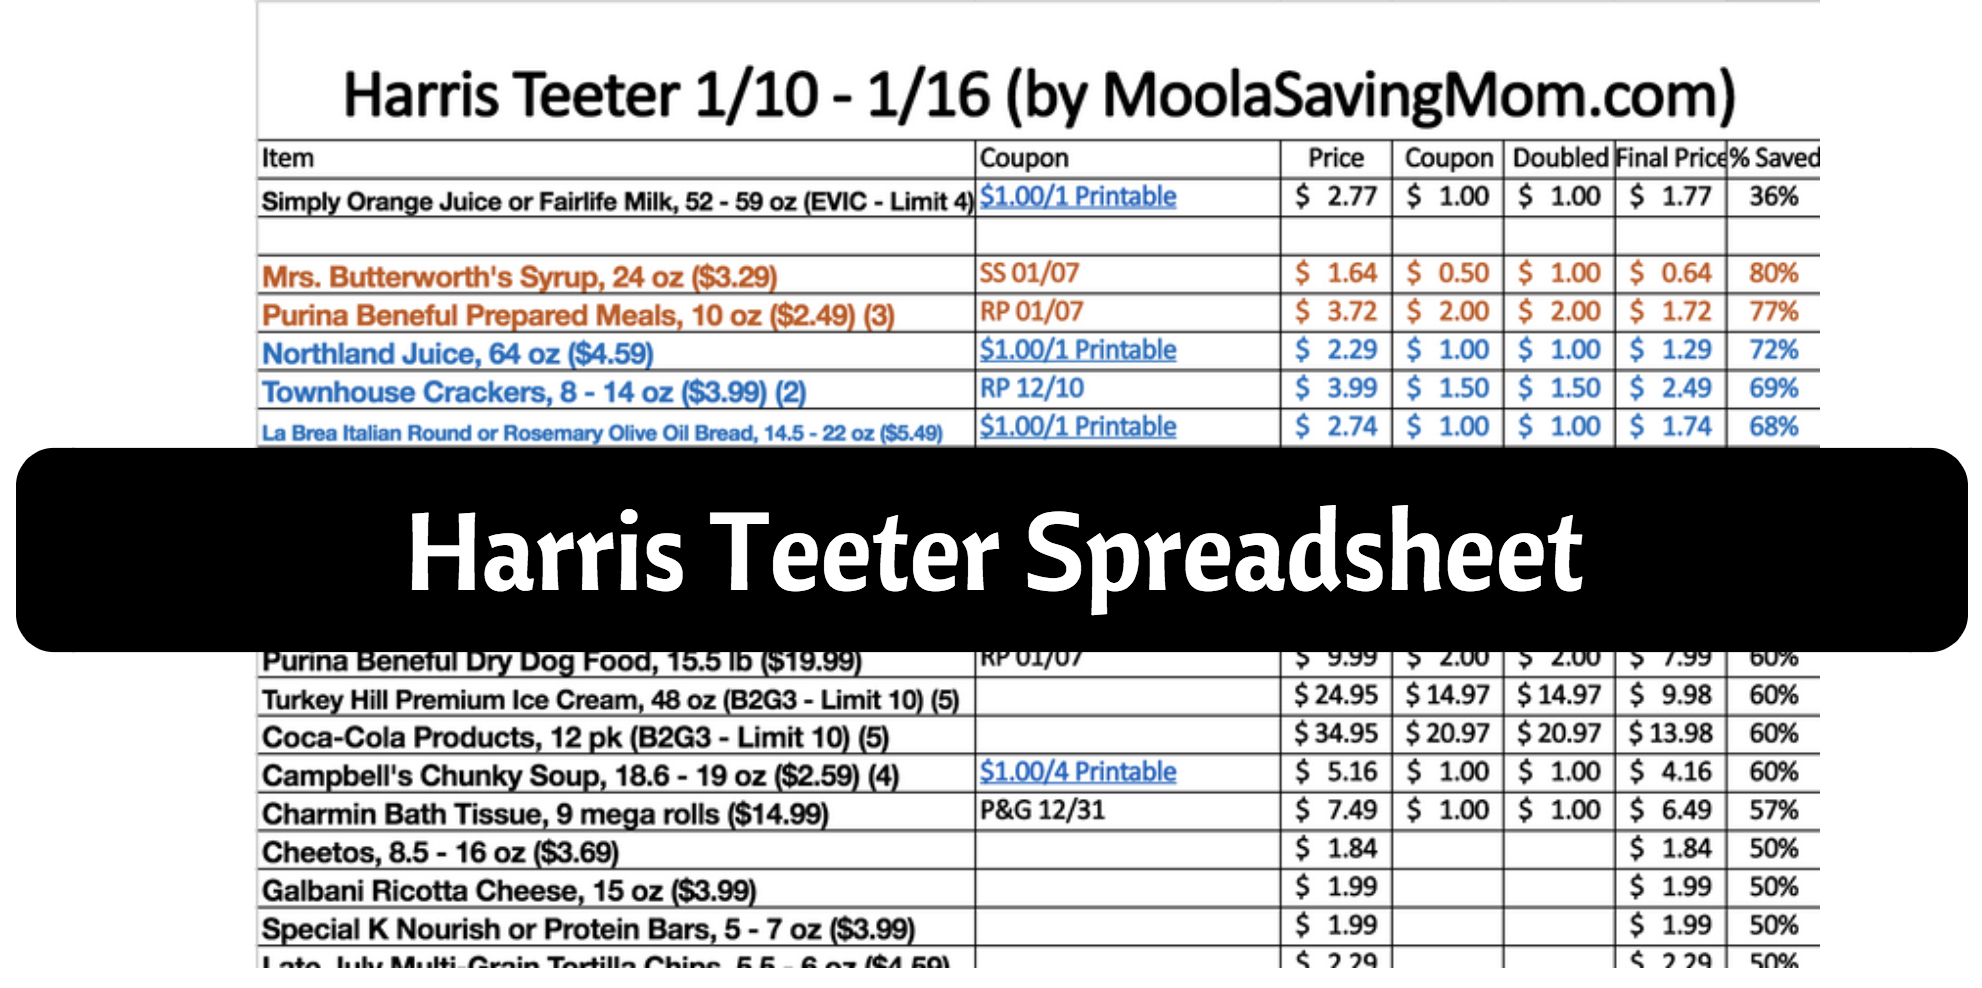 Harris Teeter Spreadsheet Inside Harris Teeter Spreadsheet 1/10  1/16  Moola Saving Mom